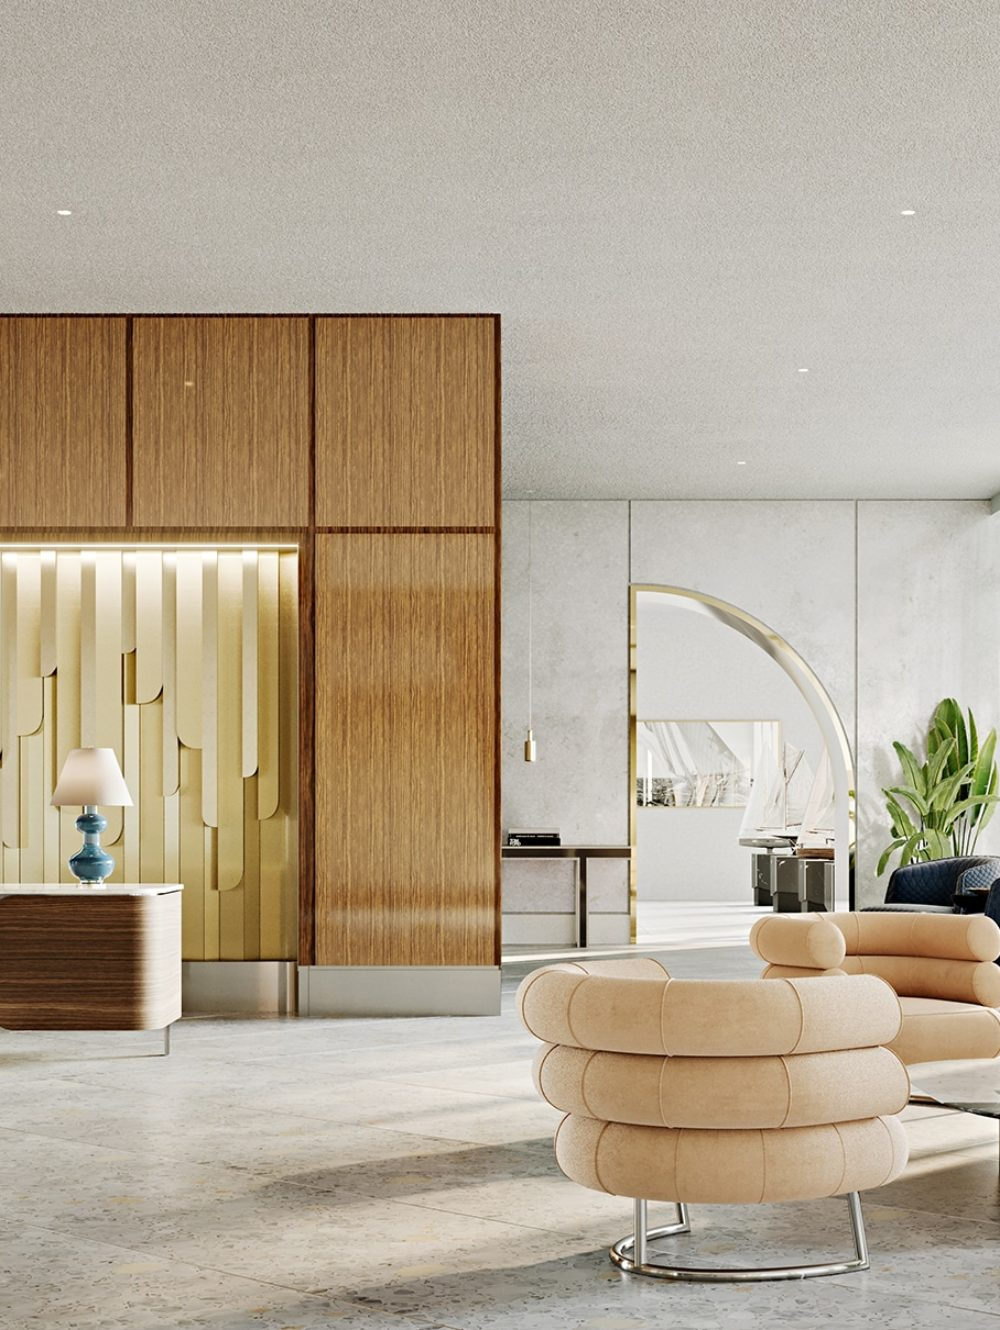 Interior lobby at Mr. C Residences in Miami. Condo complex reception area with seating along tall windows to right of room.